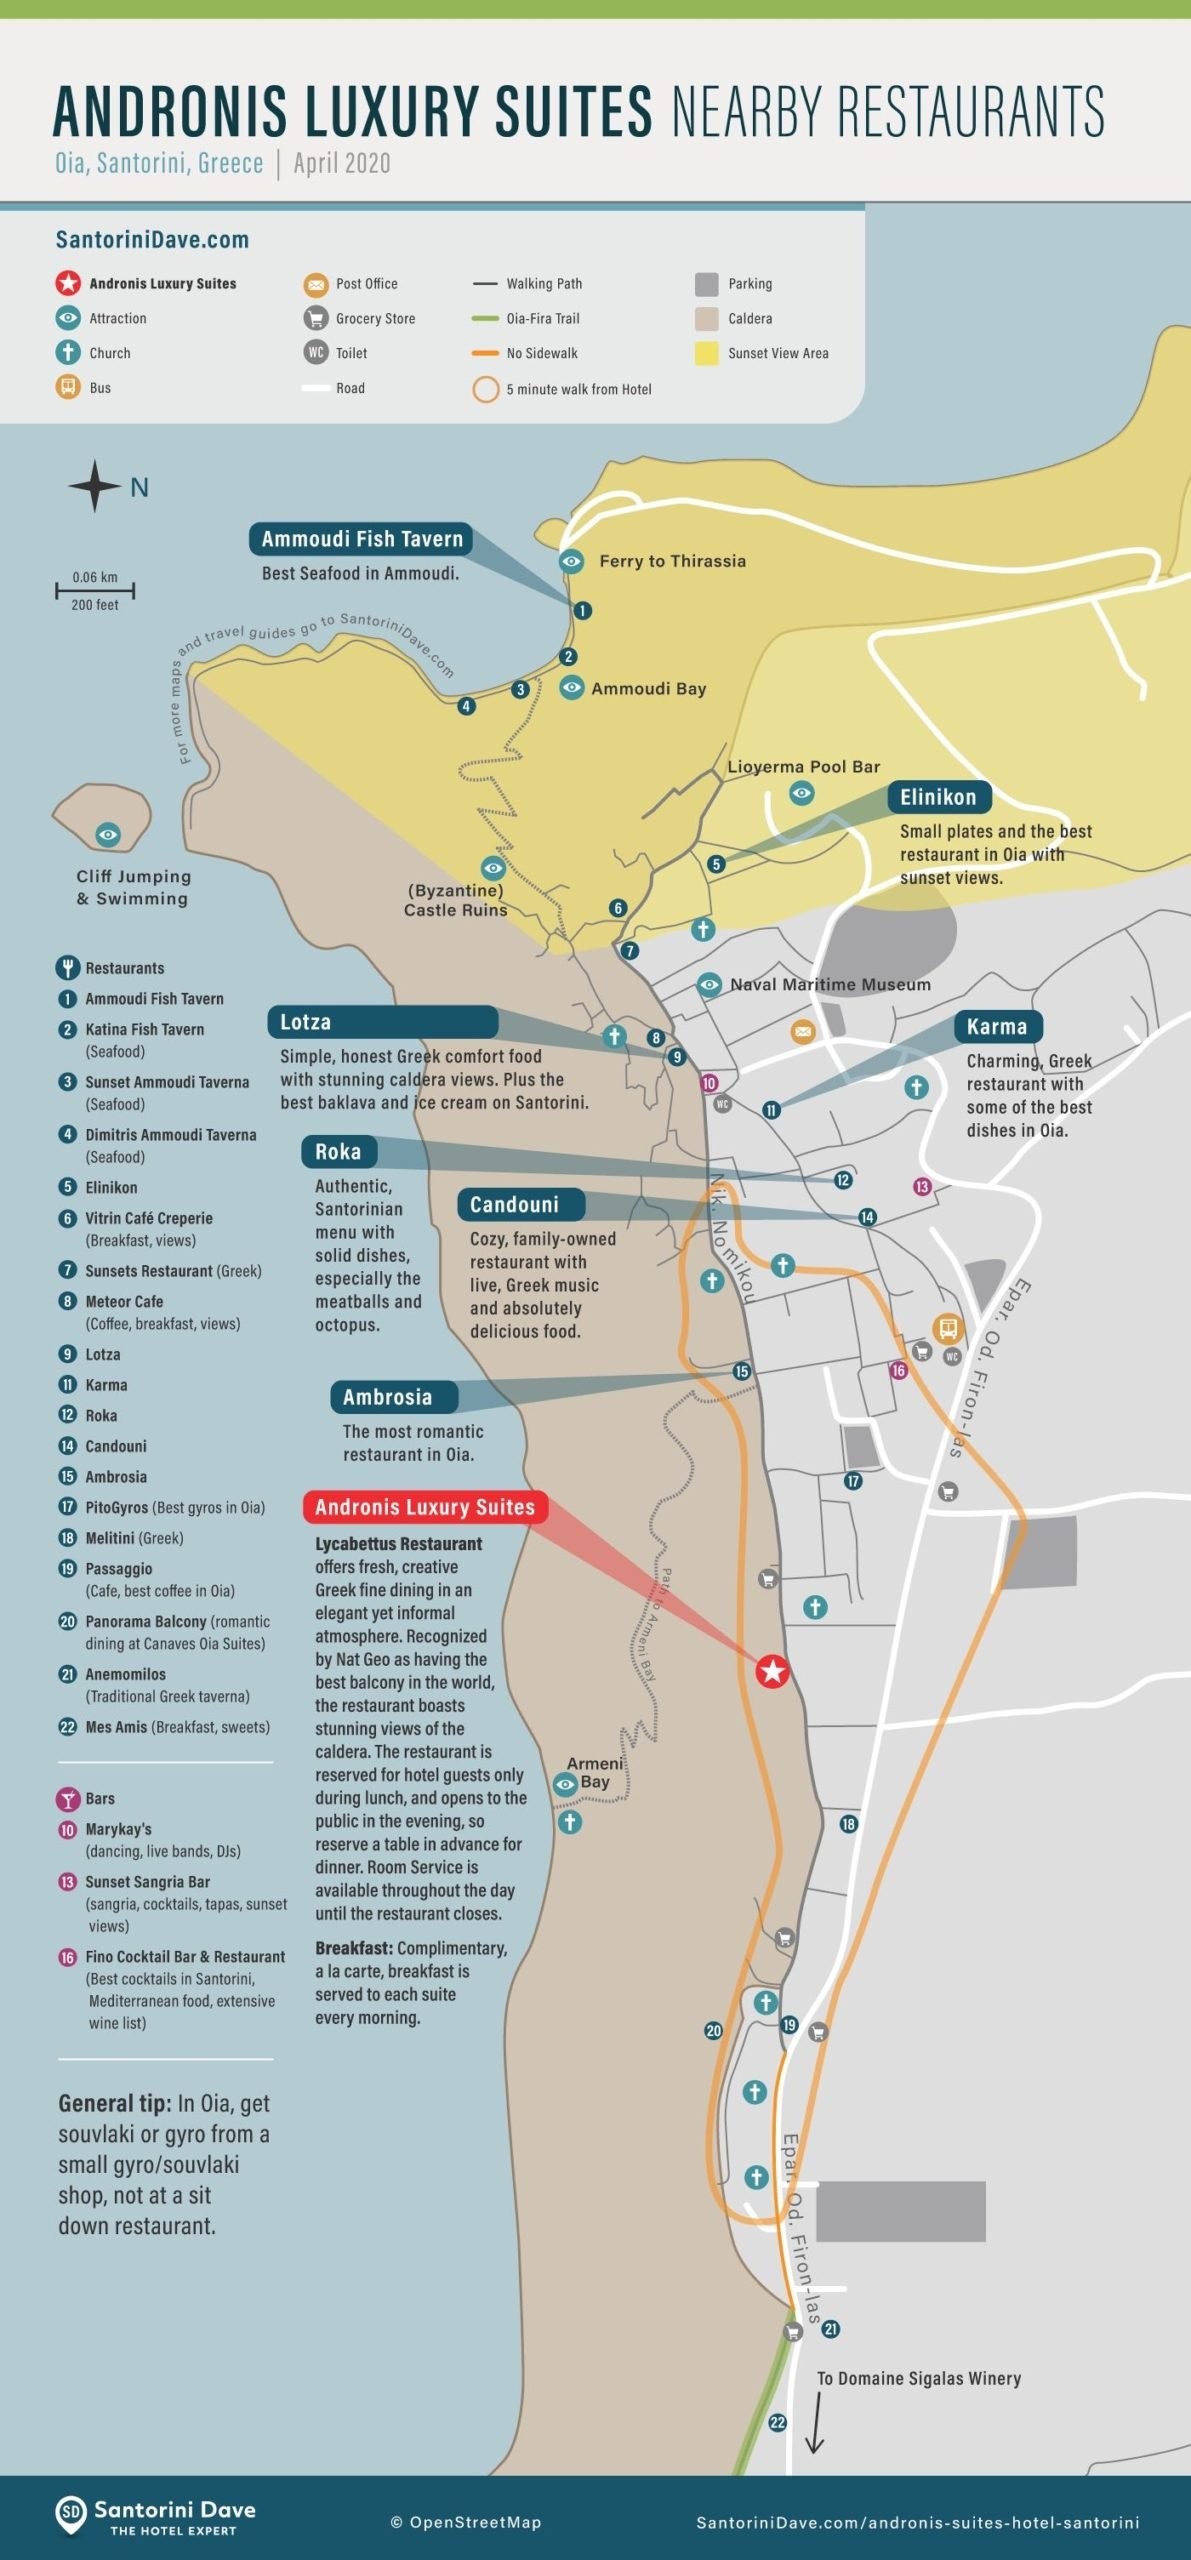 Map of restaurants near Andronis Luxury Suites